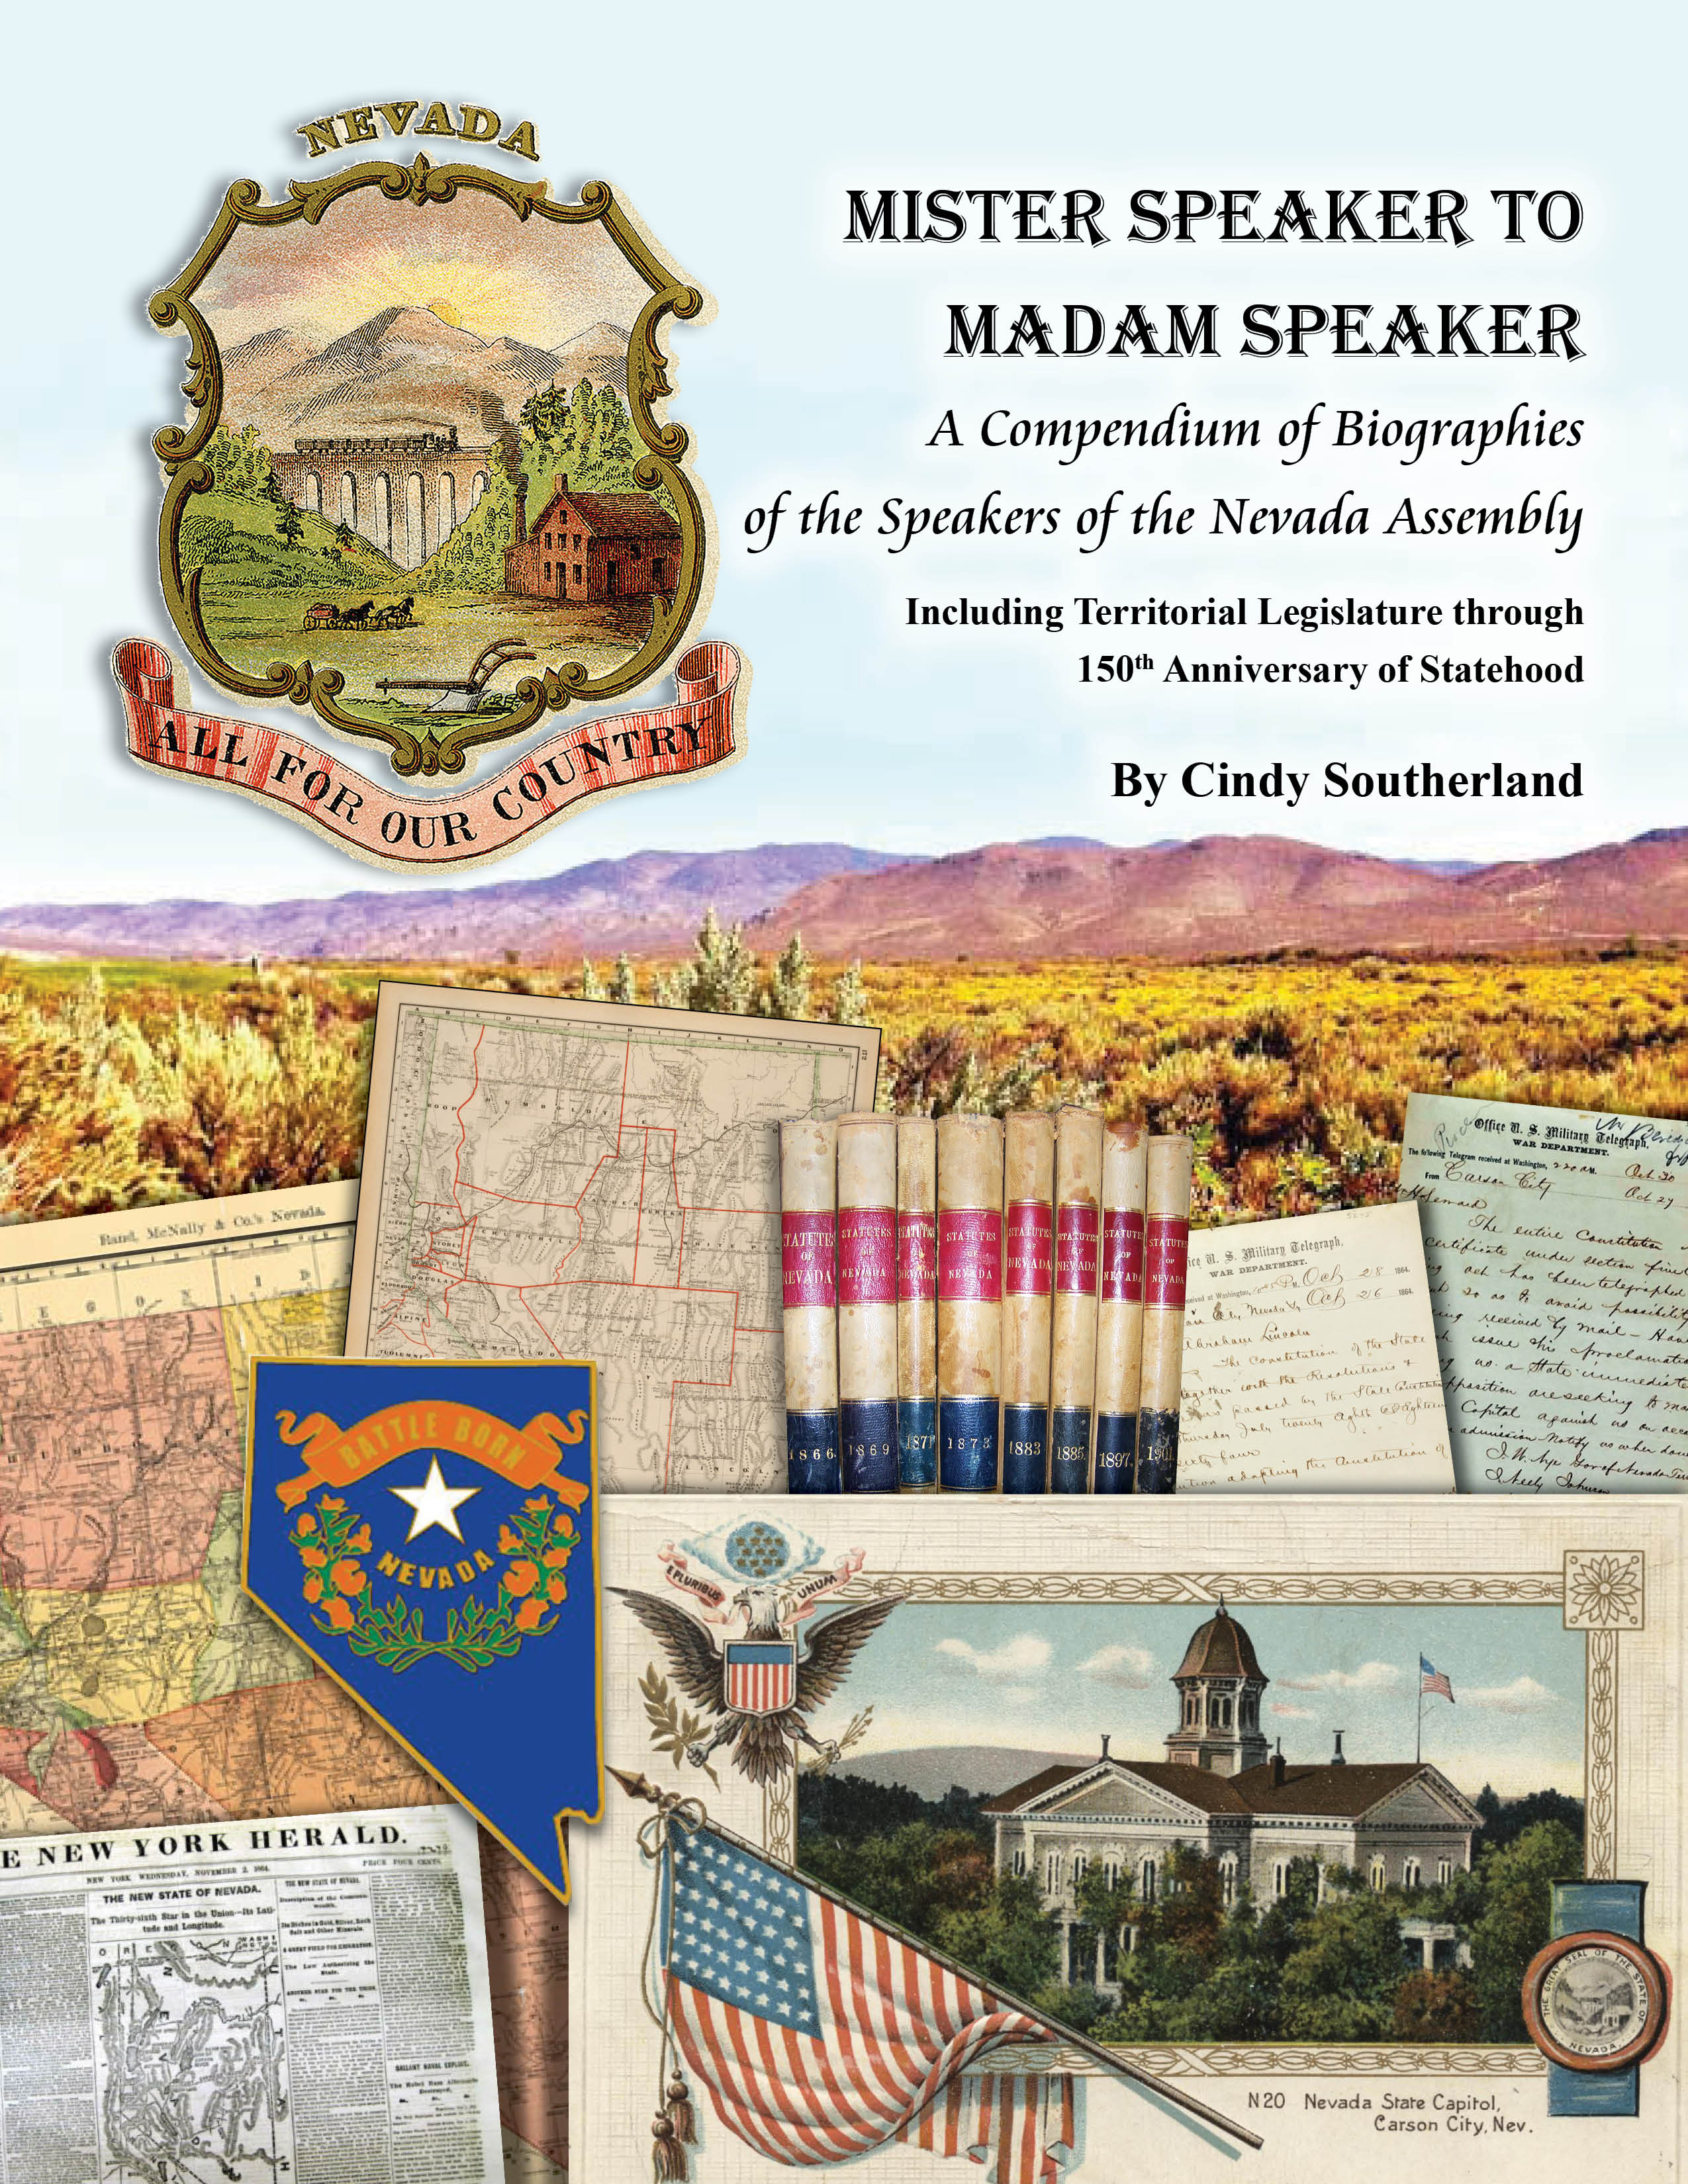 Mister Speaker To Madam Speaker Biographies Of The Nevada Assembly Speakers